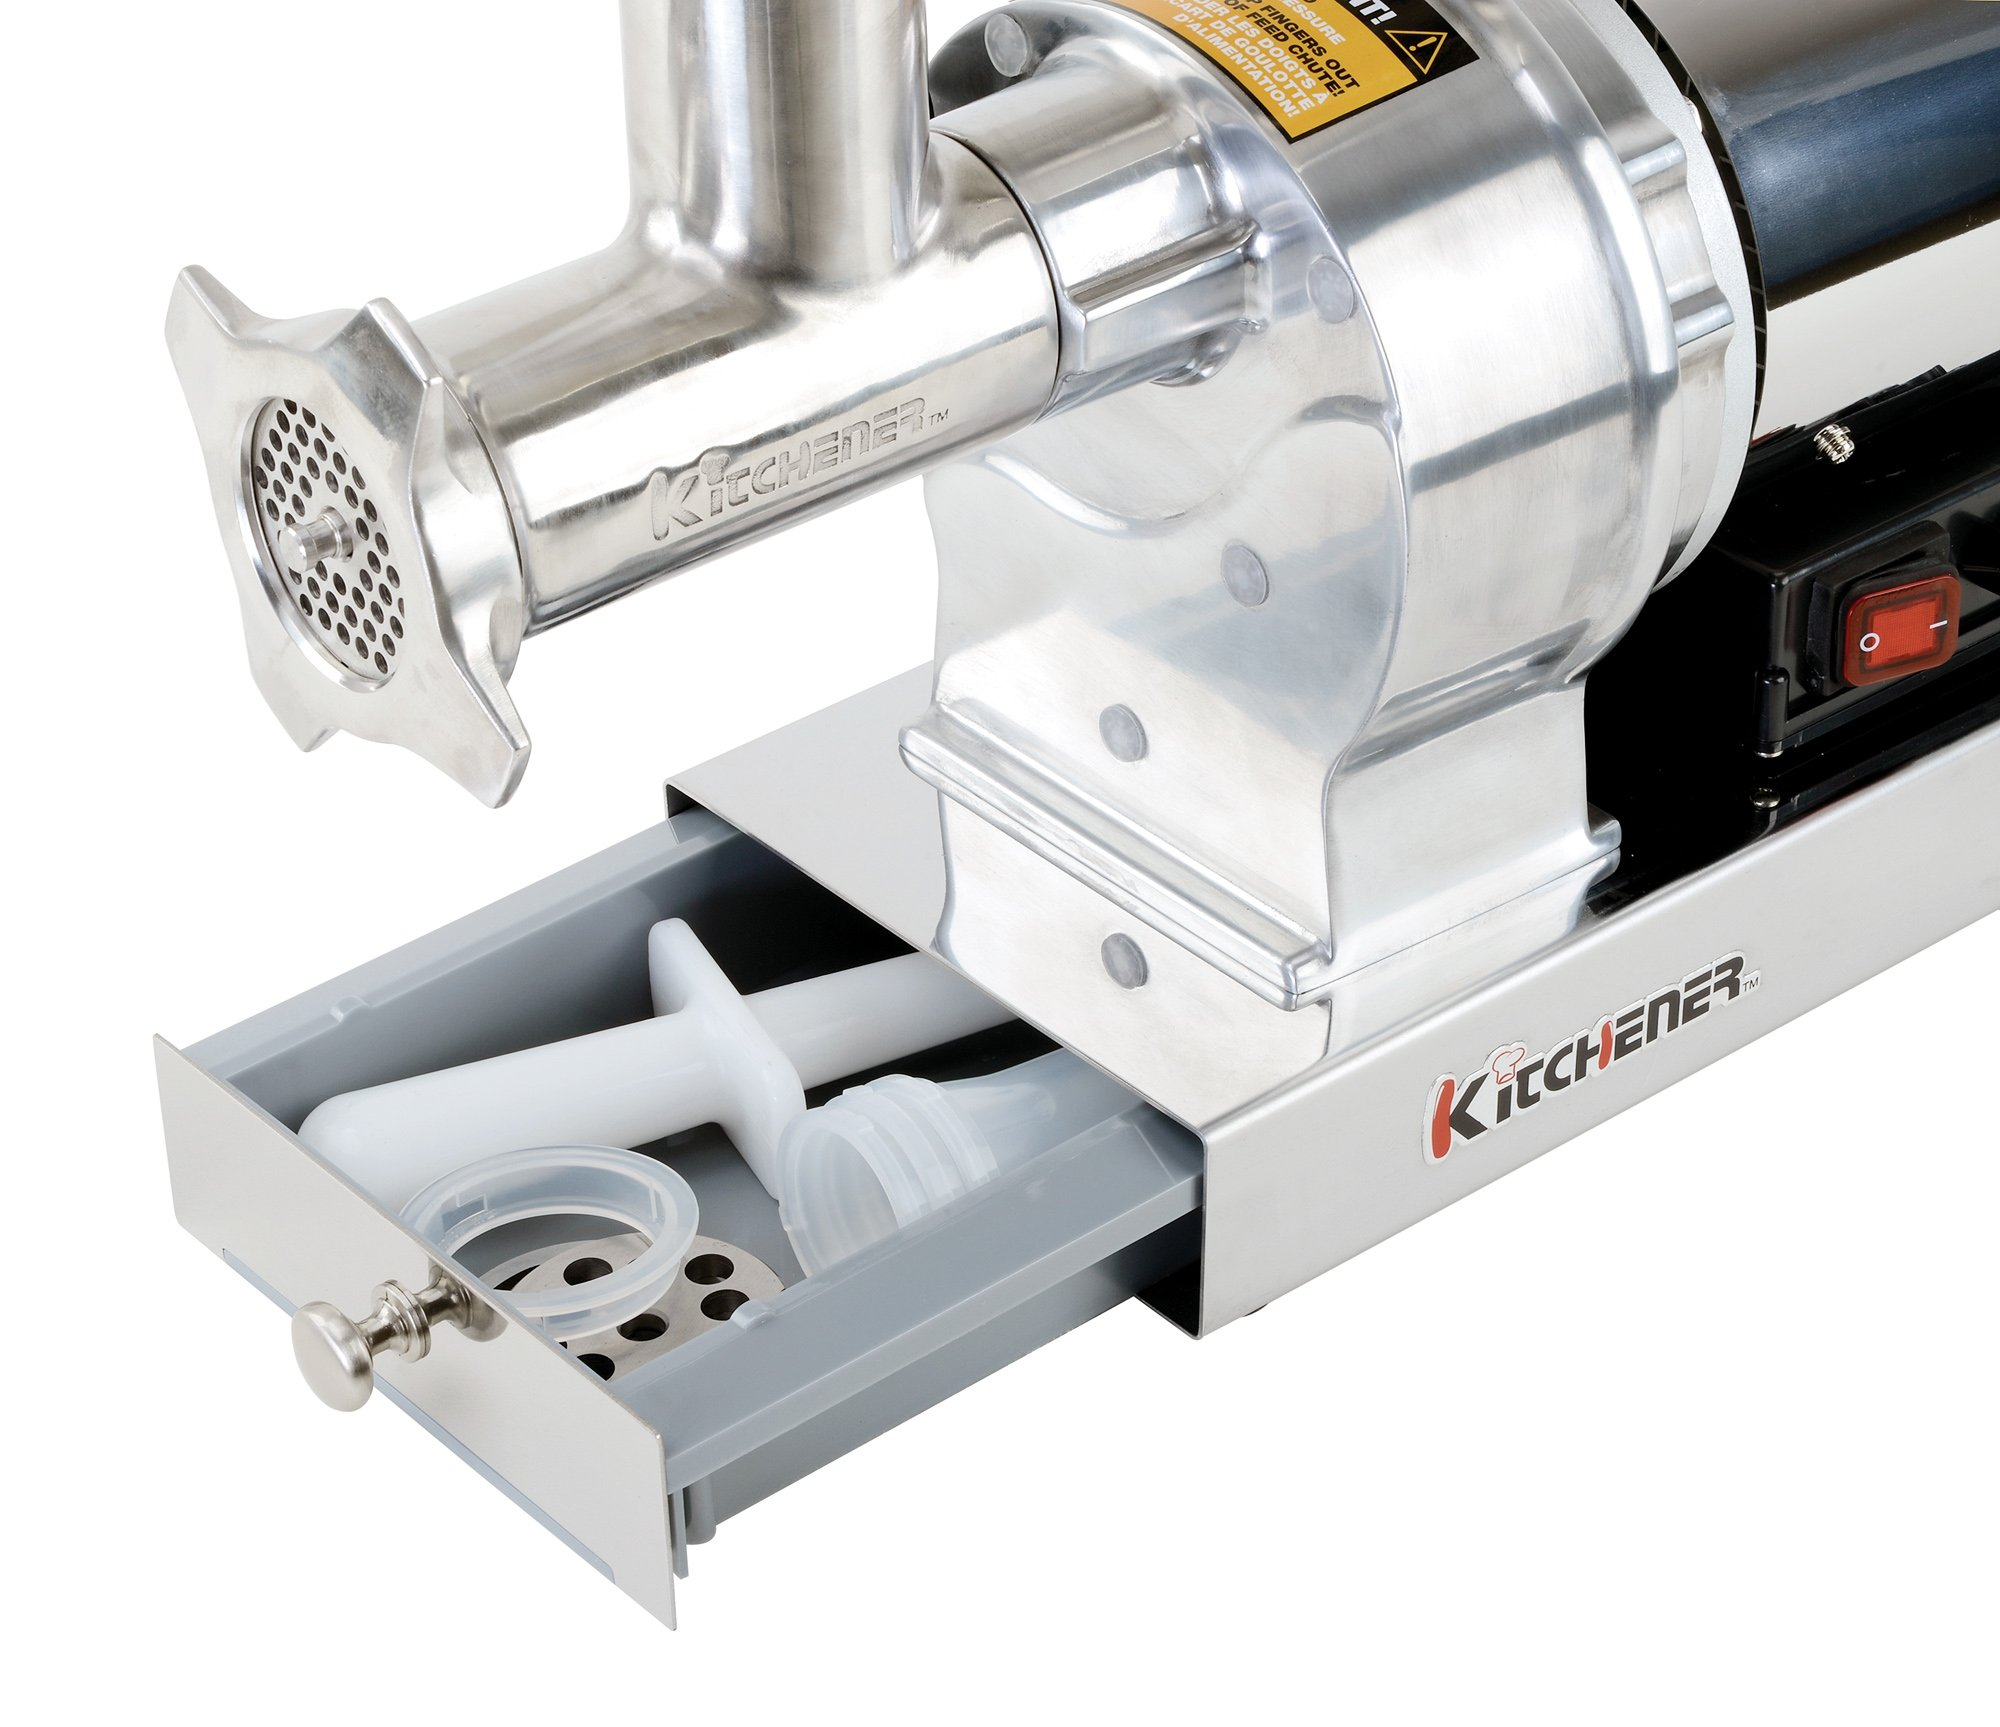 Kitchener #8 Commercial Grade Electric Stainless Steel Meat Grinder 1/2 HP (370W), (480-lbs Per Hour) by Kitchener (Image #2)